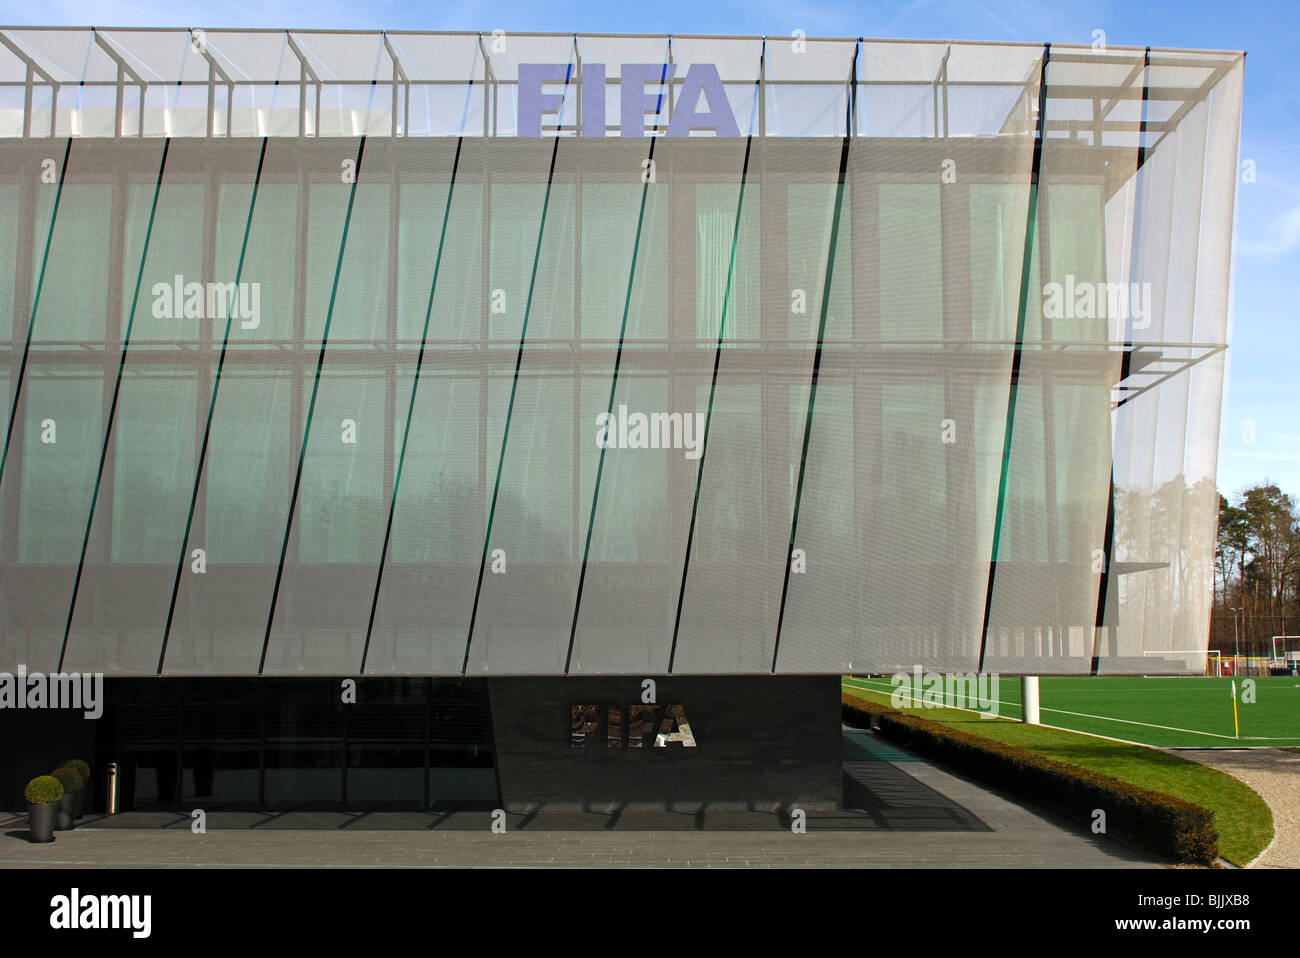 Sun protection net on the Home of FIFA, headquarters of the international governing body of association football, - Stock Image